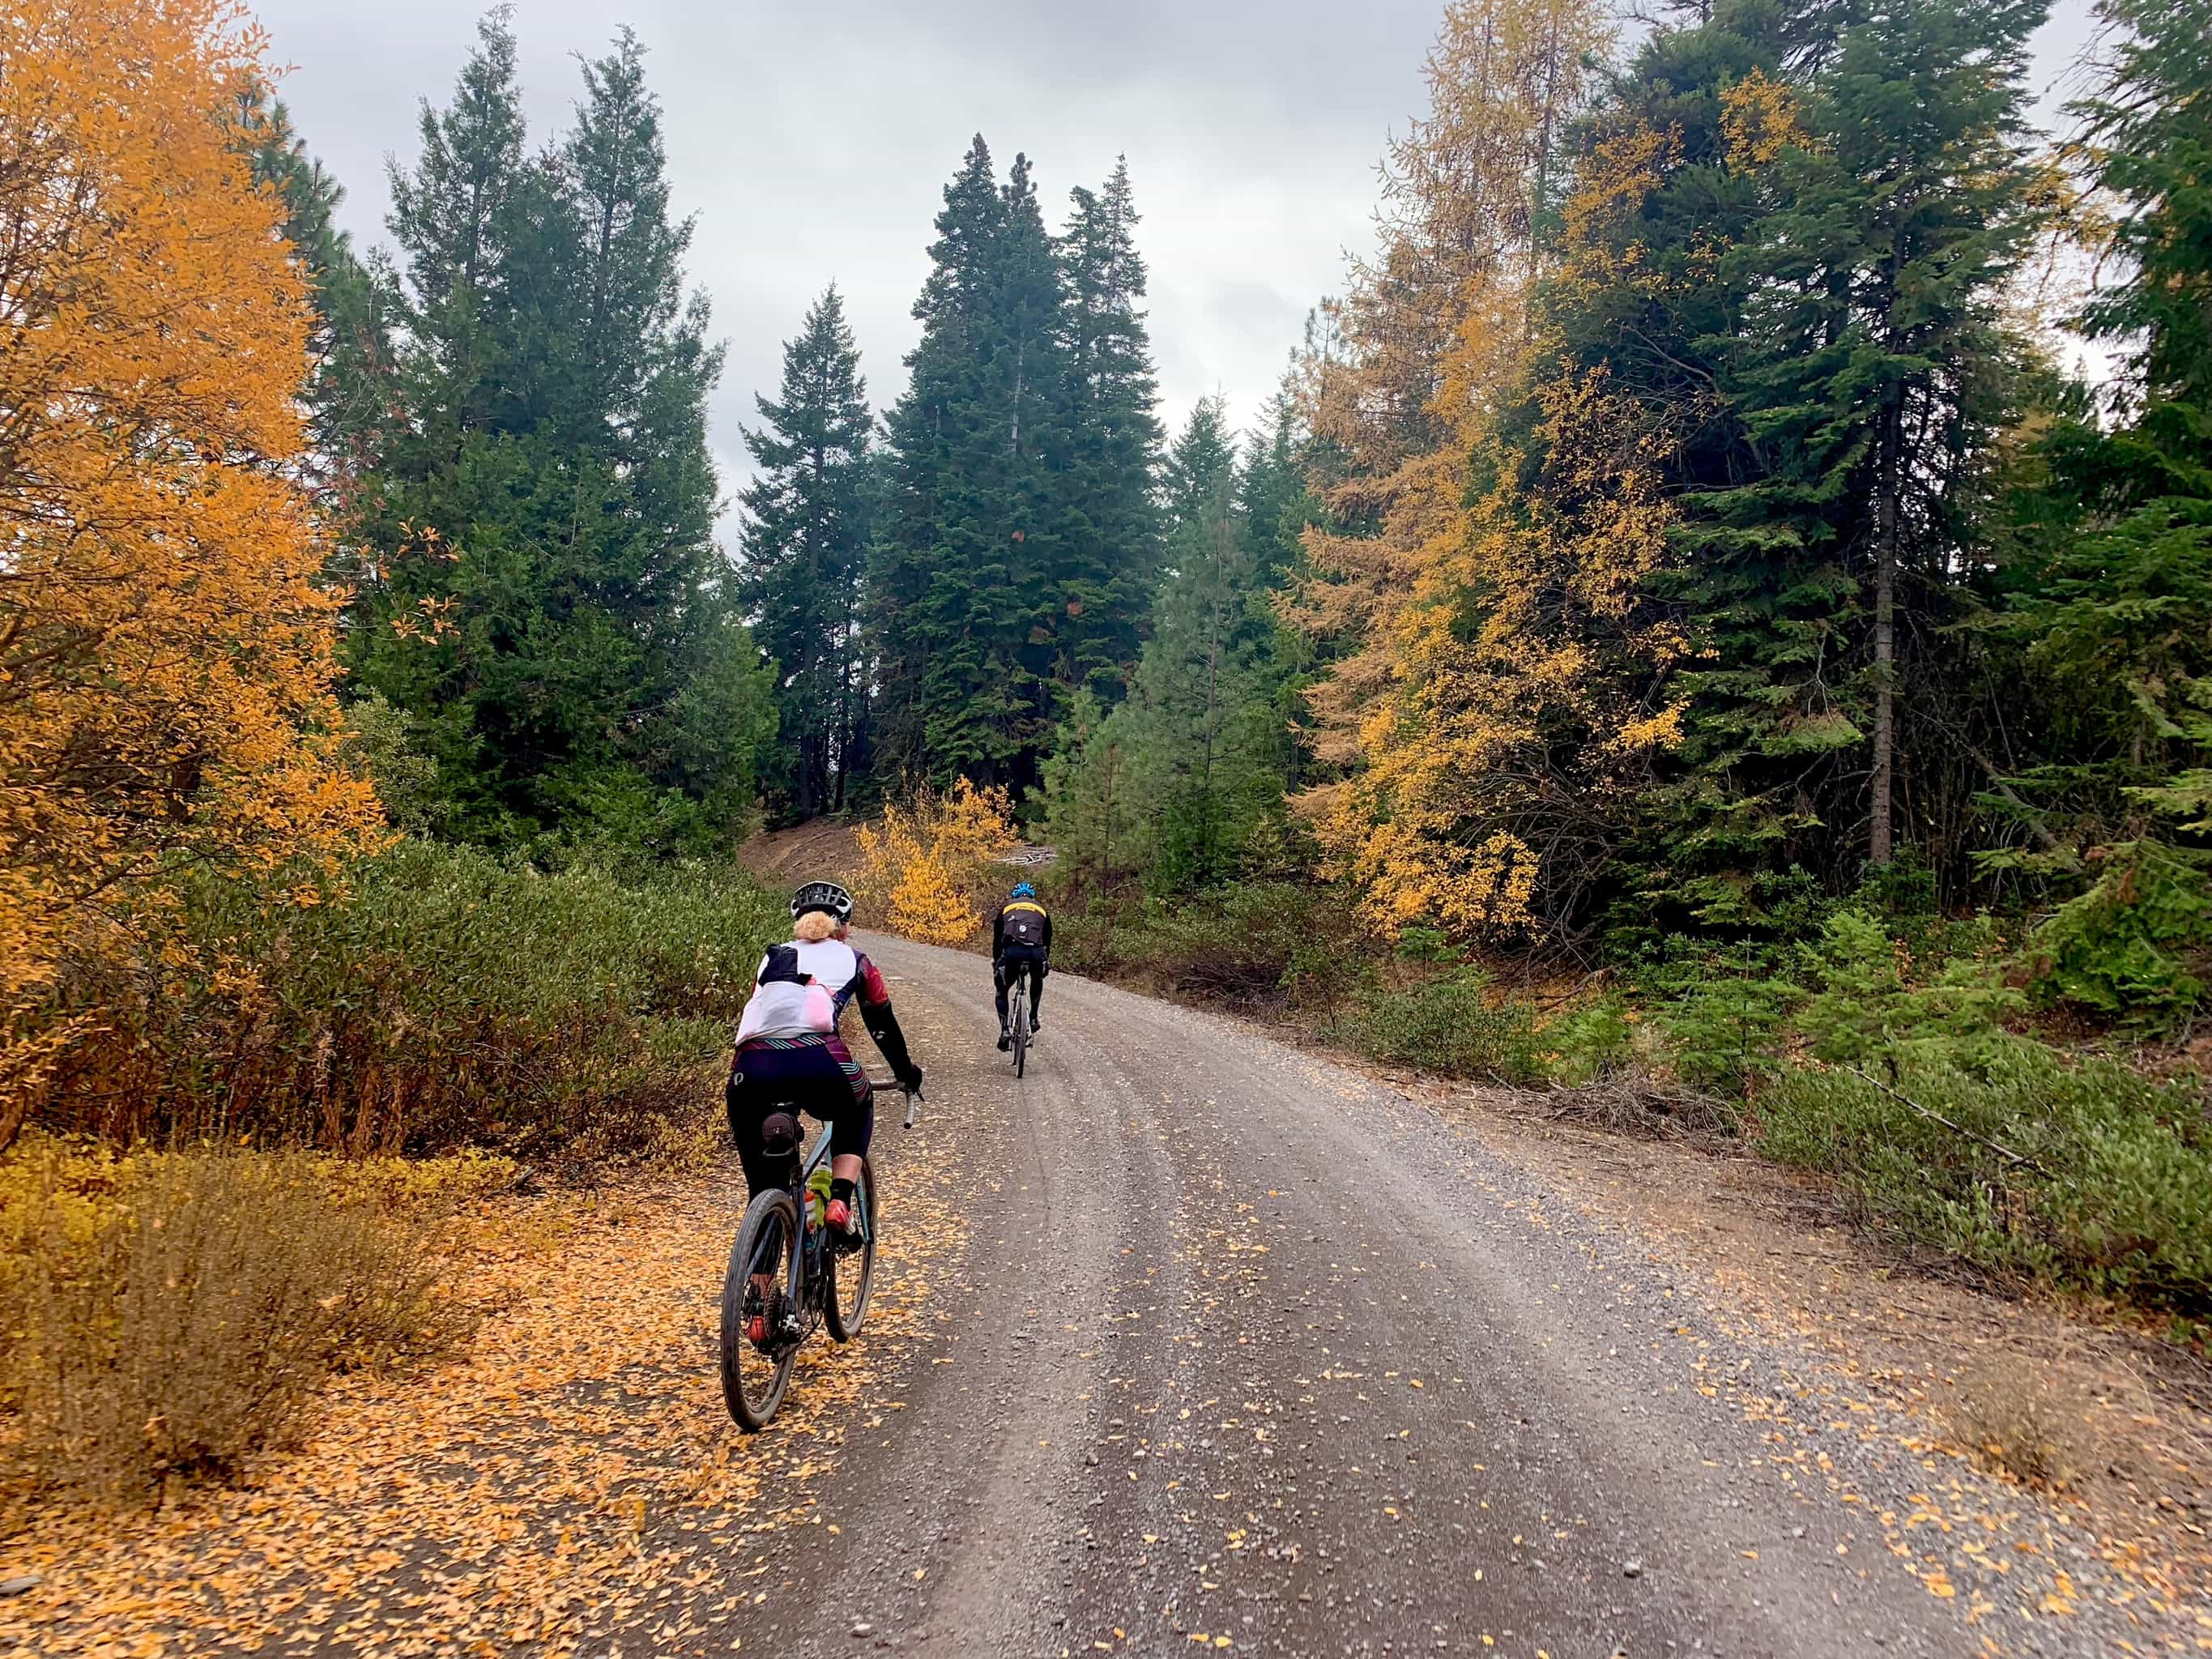 Two gravel bike riders on good hard pack gravel with trees in fall colors.